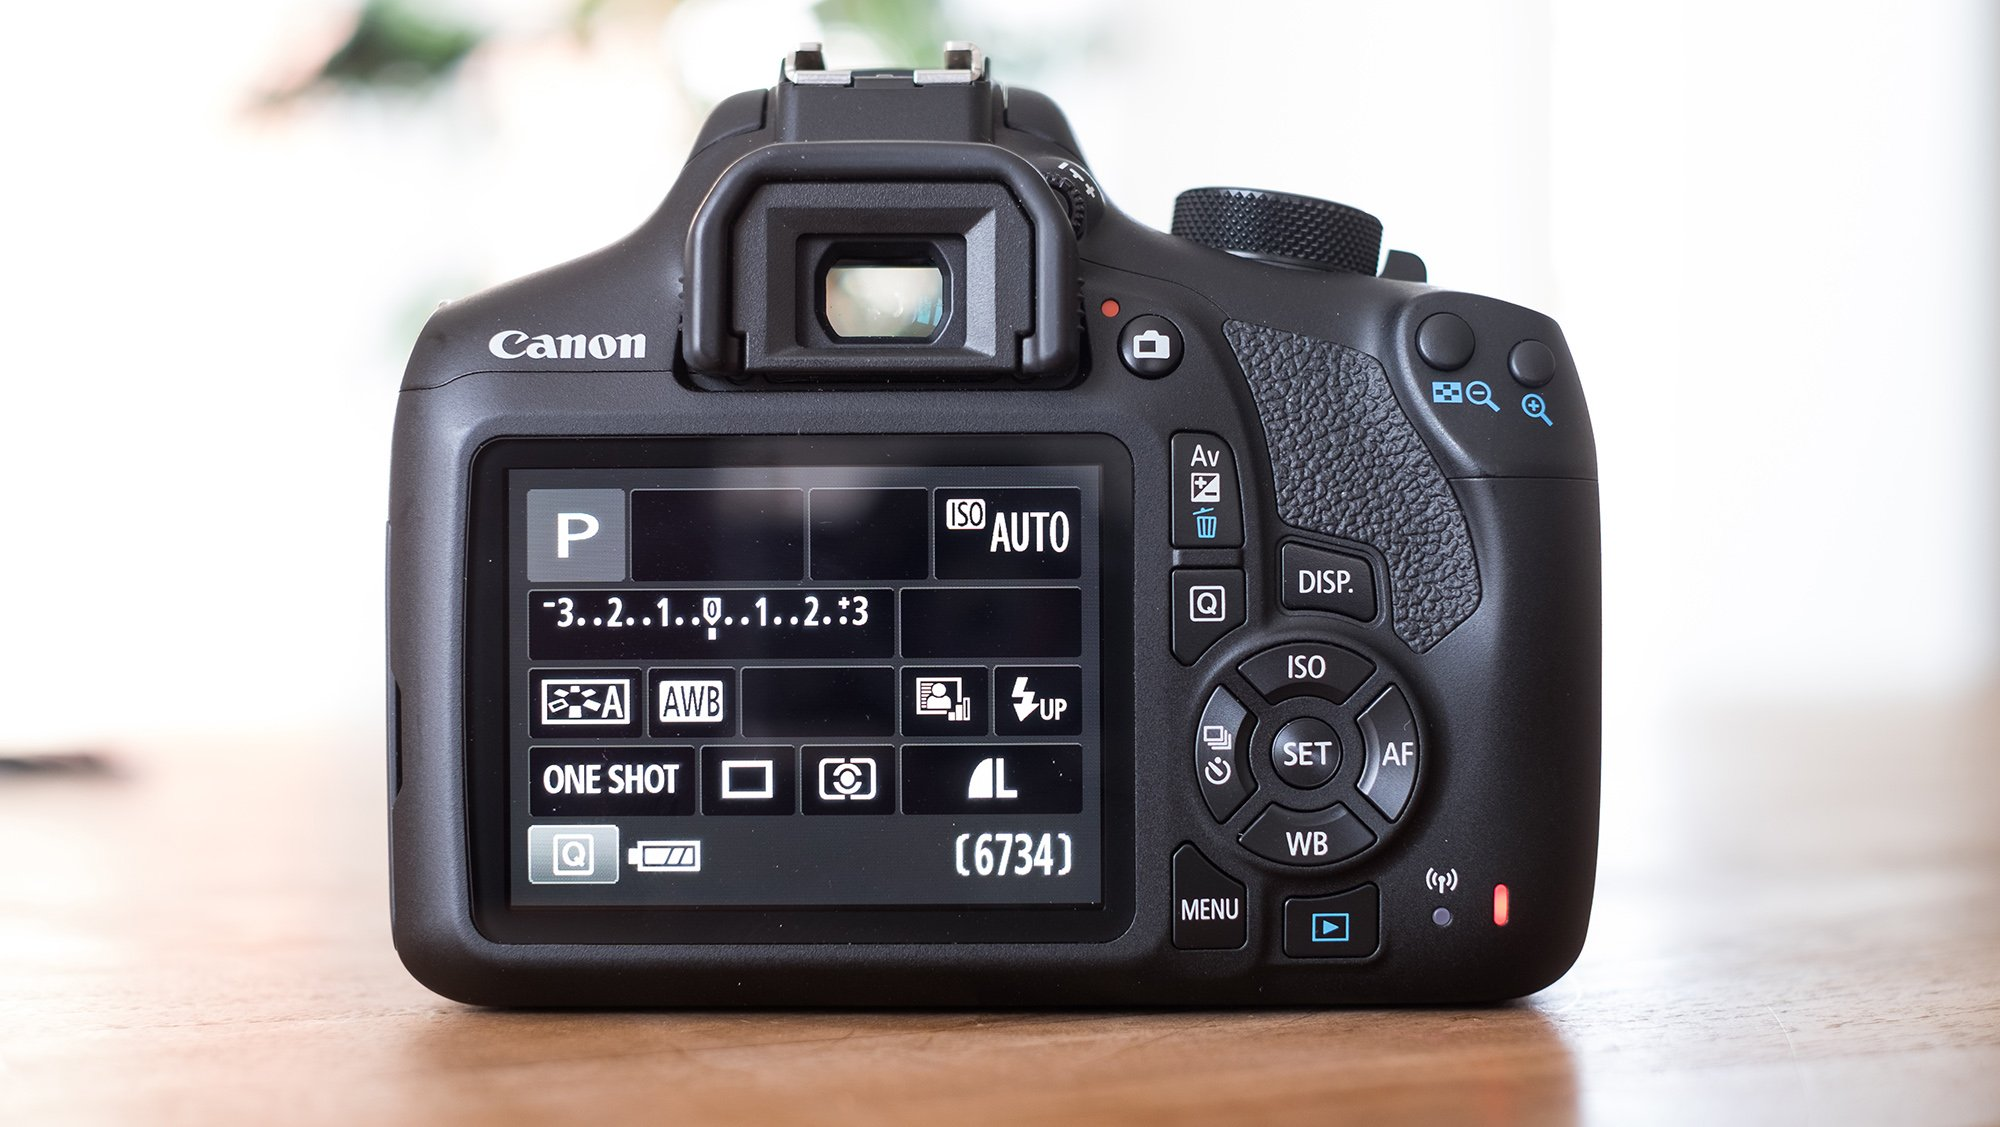 Canon EOS 1300D review: Doesn't quite cut the mustard